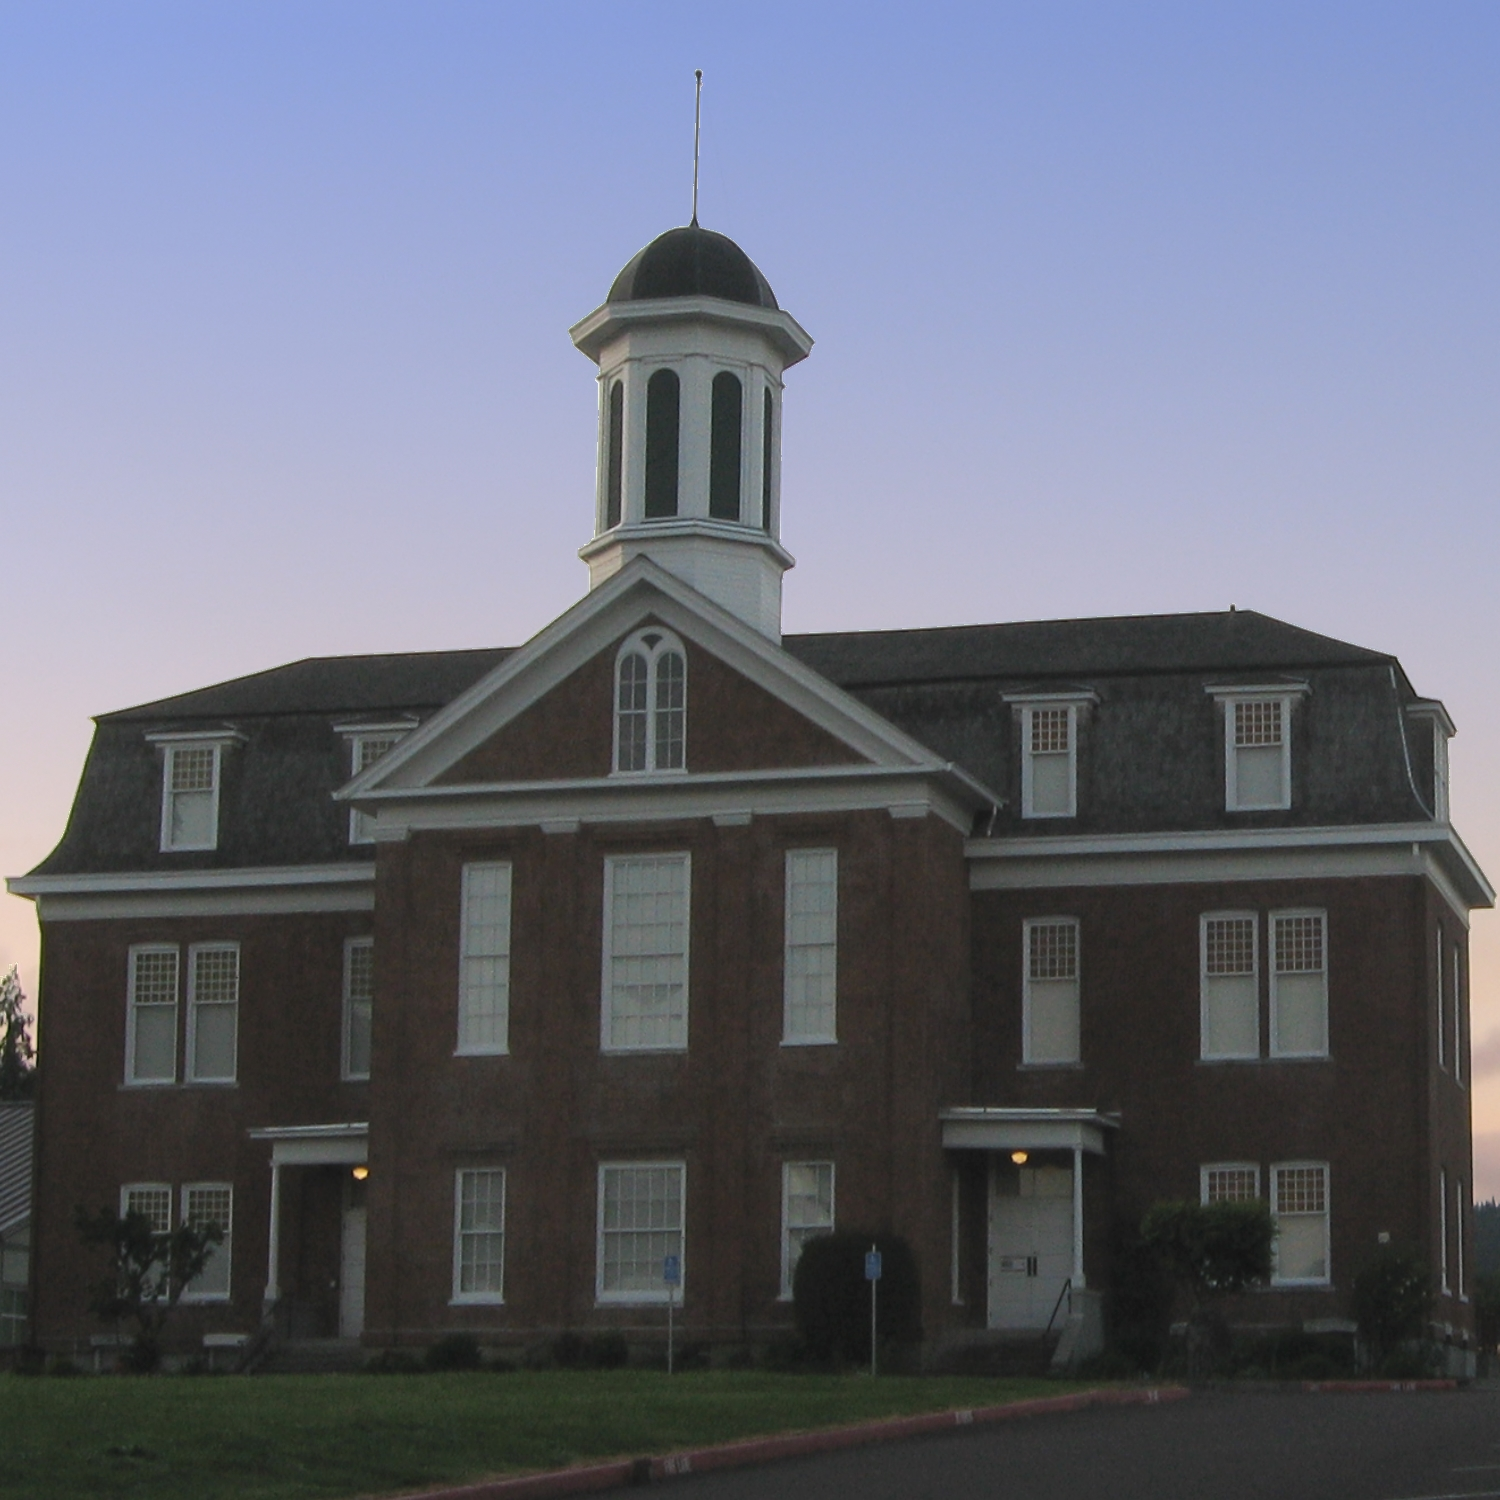 Image of Benton County Historical Museum